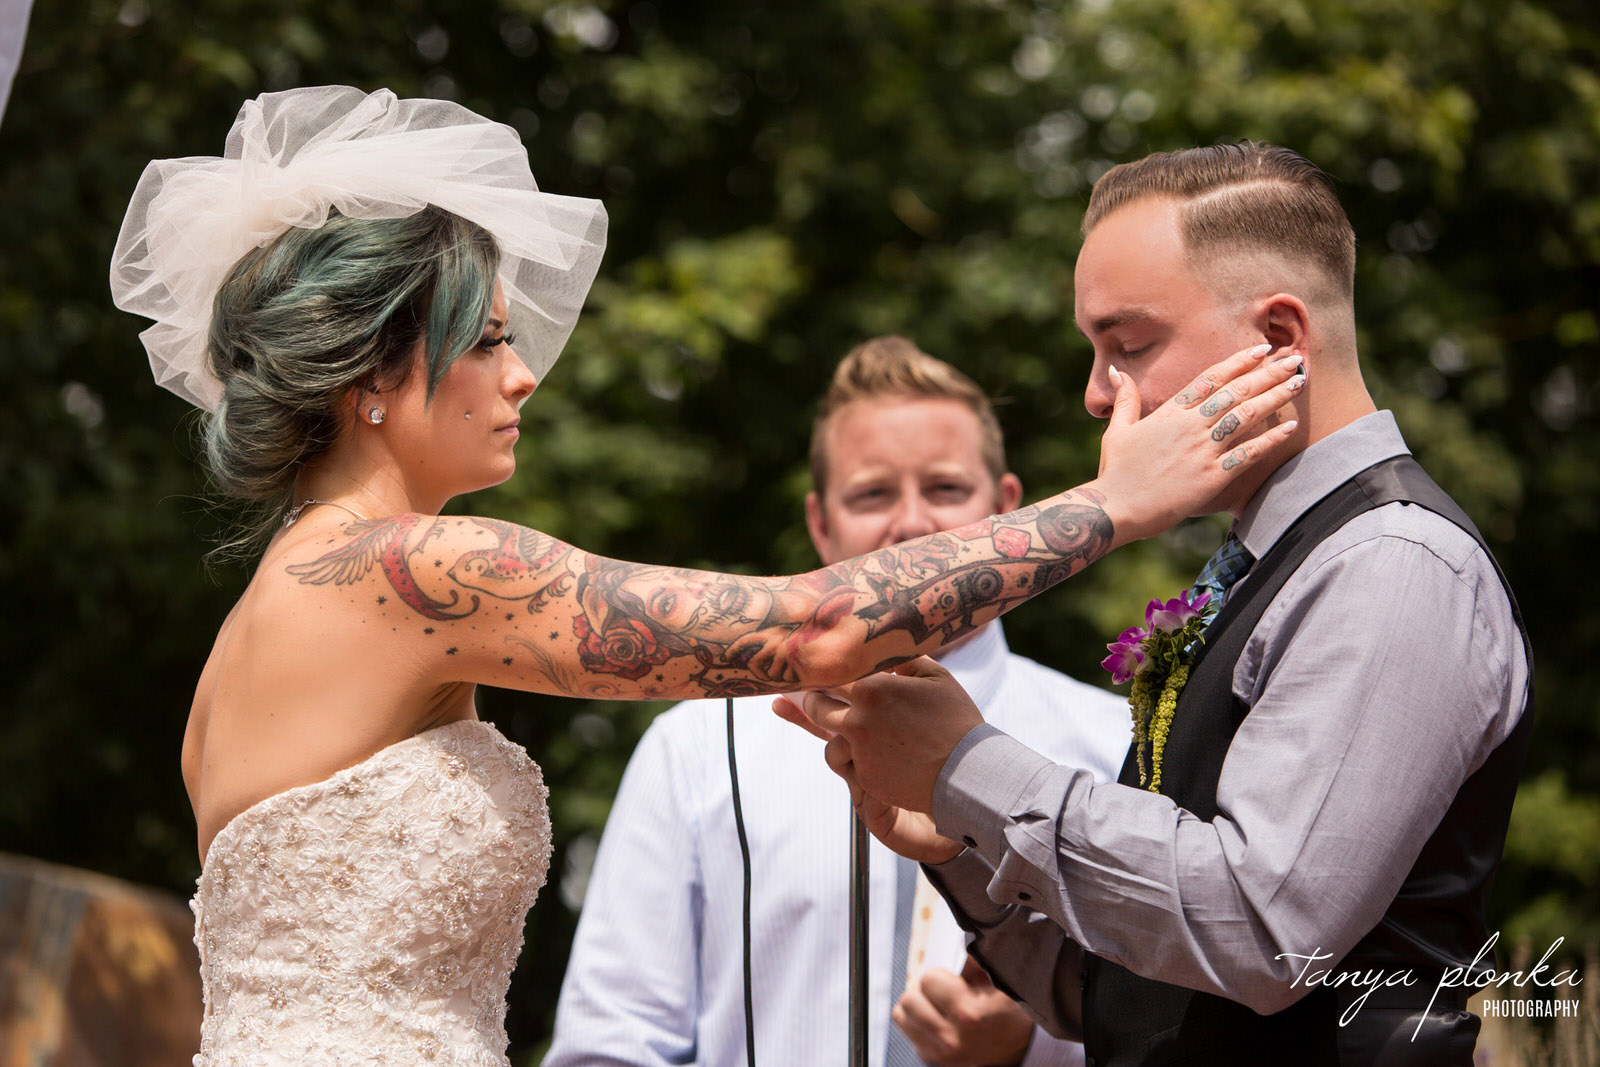 bride with tattooed arm wipes away tear from groom during wedding vows